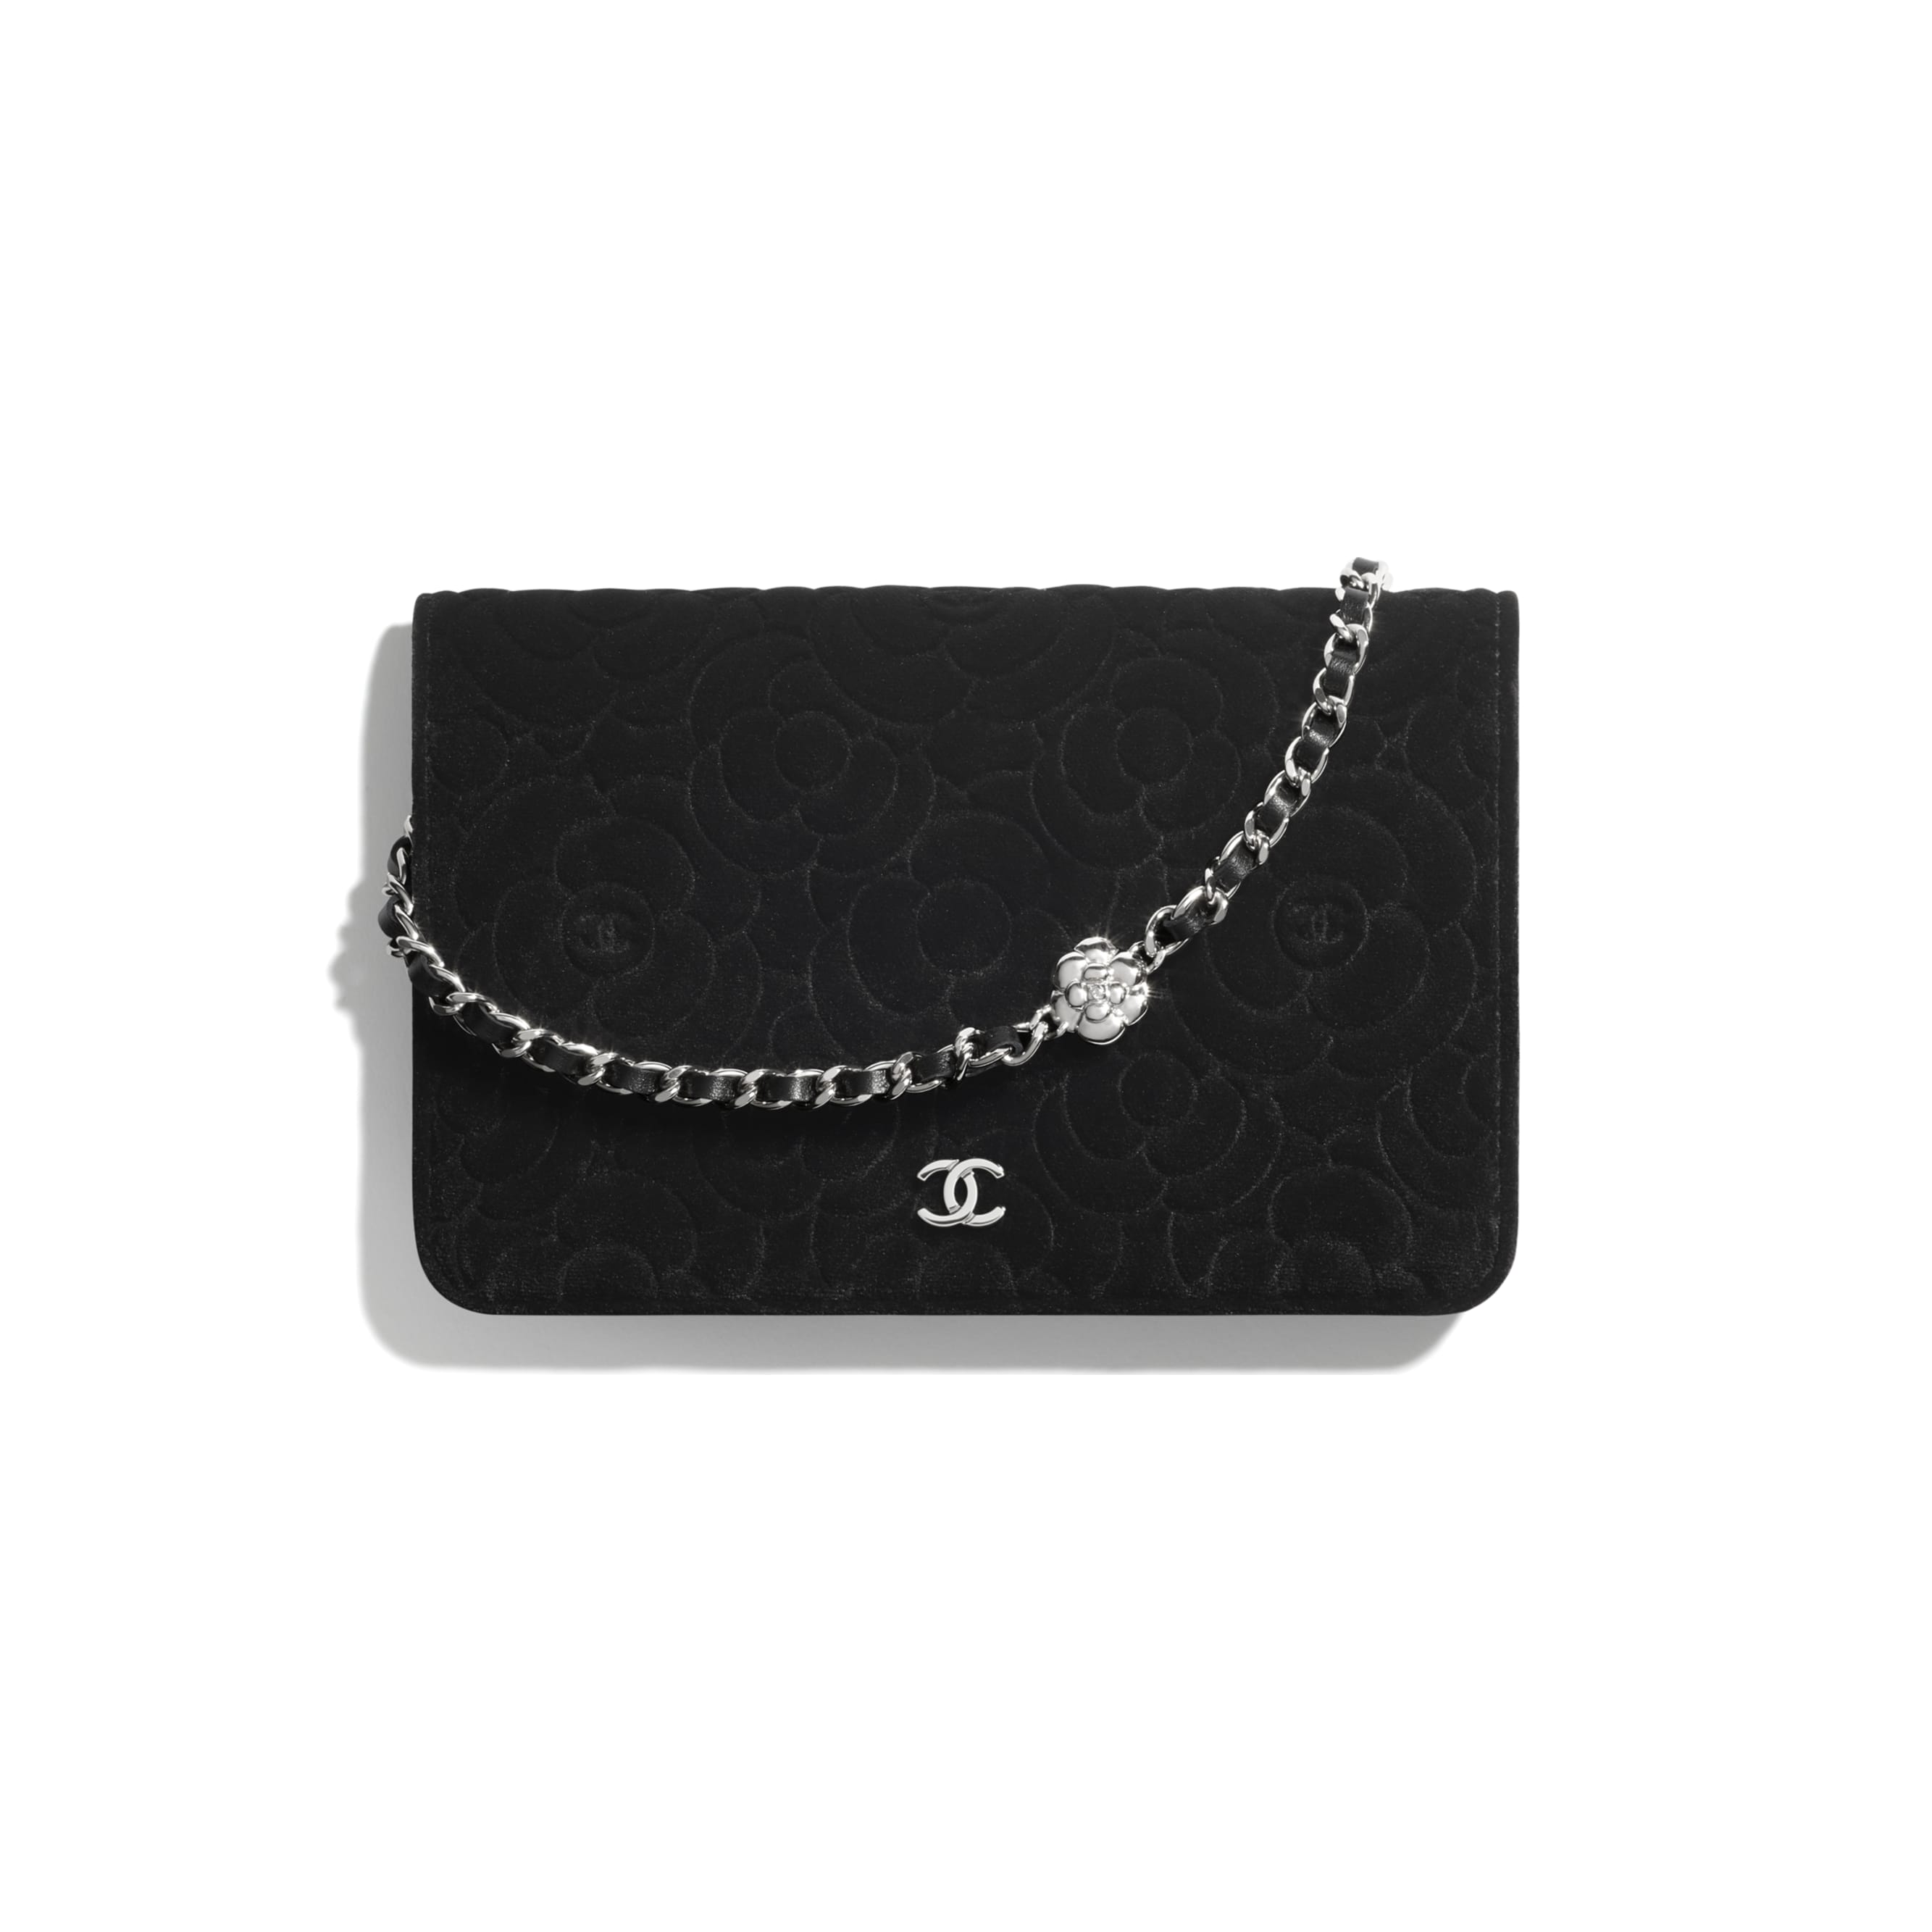 Wallet On Chain - Black - Velvet & Silver-Tone Metal - CHANEL - Default view - see standard sized version